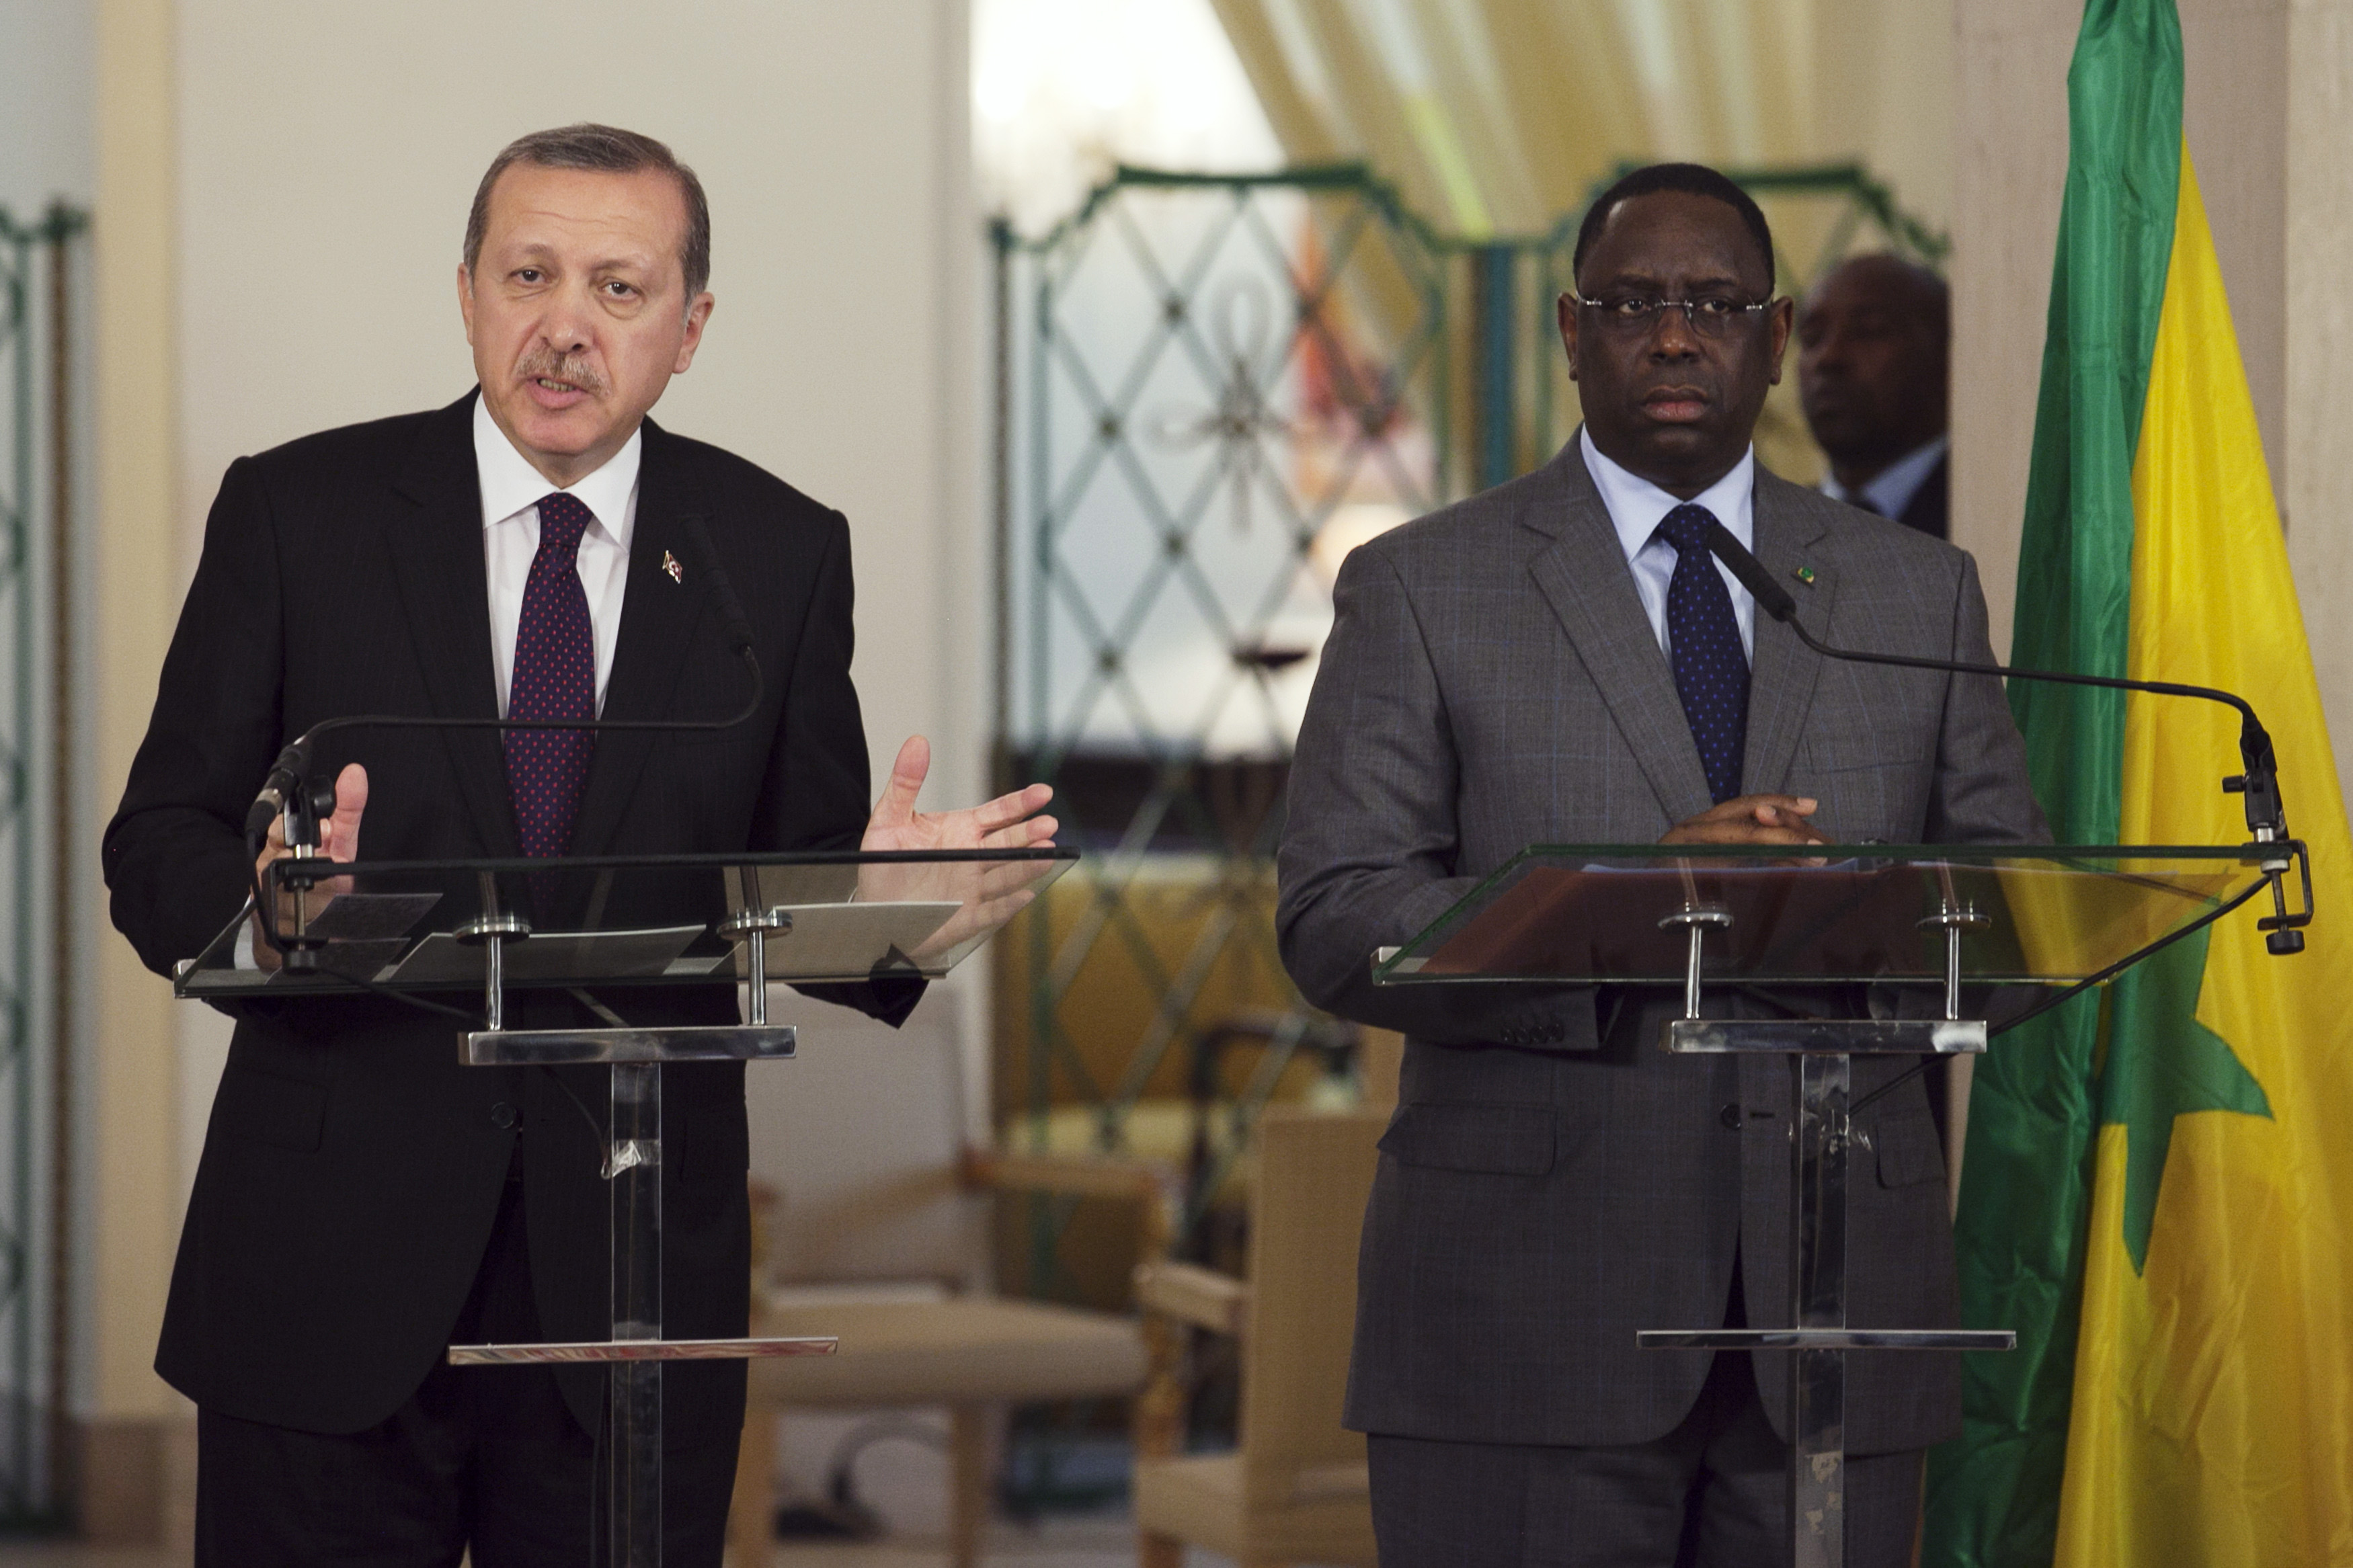 Turkey's Prime Minister Tayyip Erdogan (L) speaks to the media as Senegal's President Macky Sall looks on during a meeting between the two heads of state at the presidential palace in Dakar January 10, 2013.